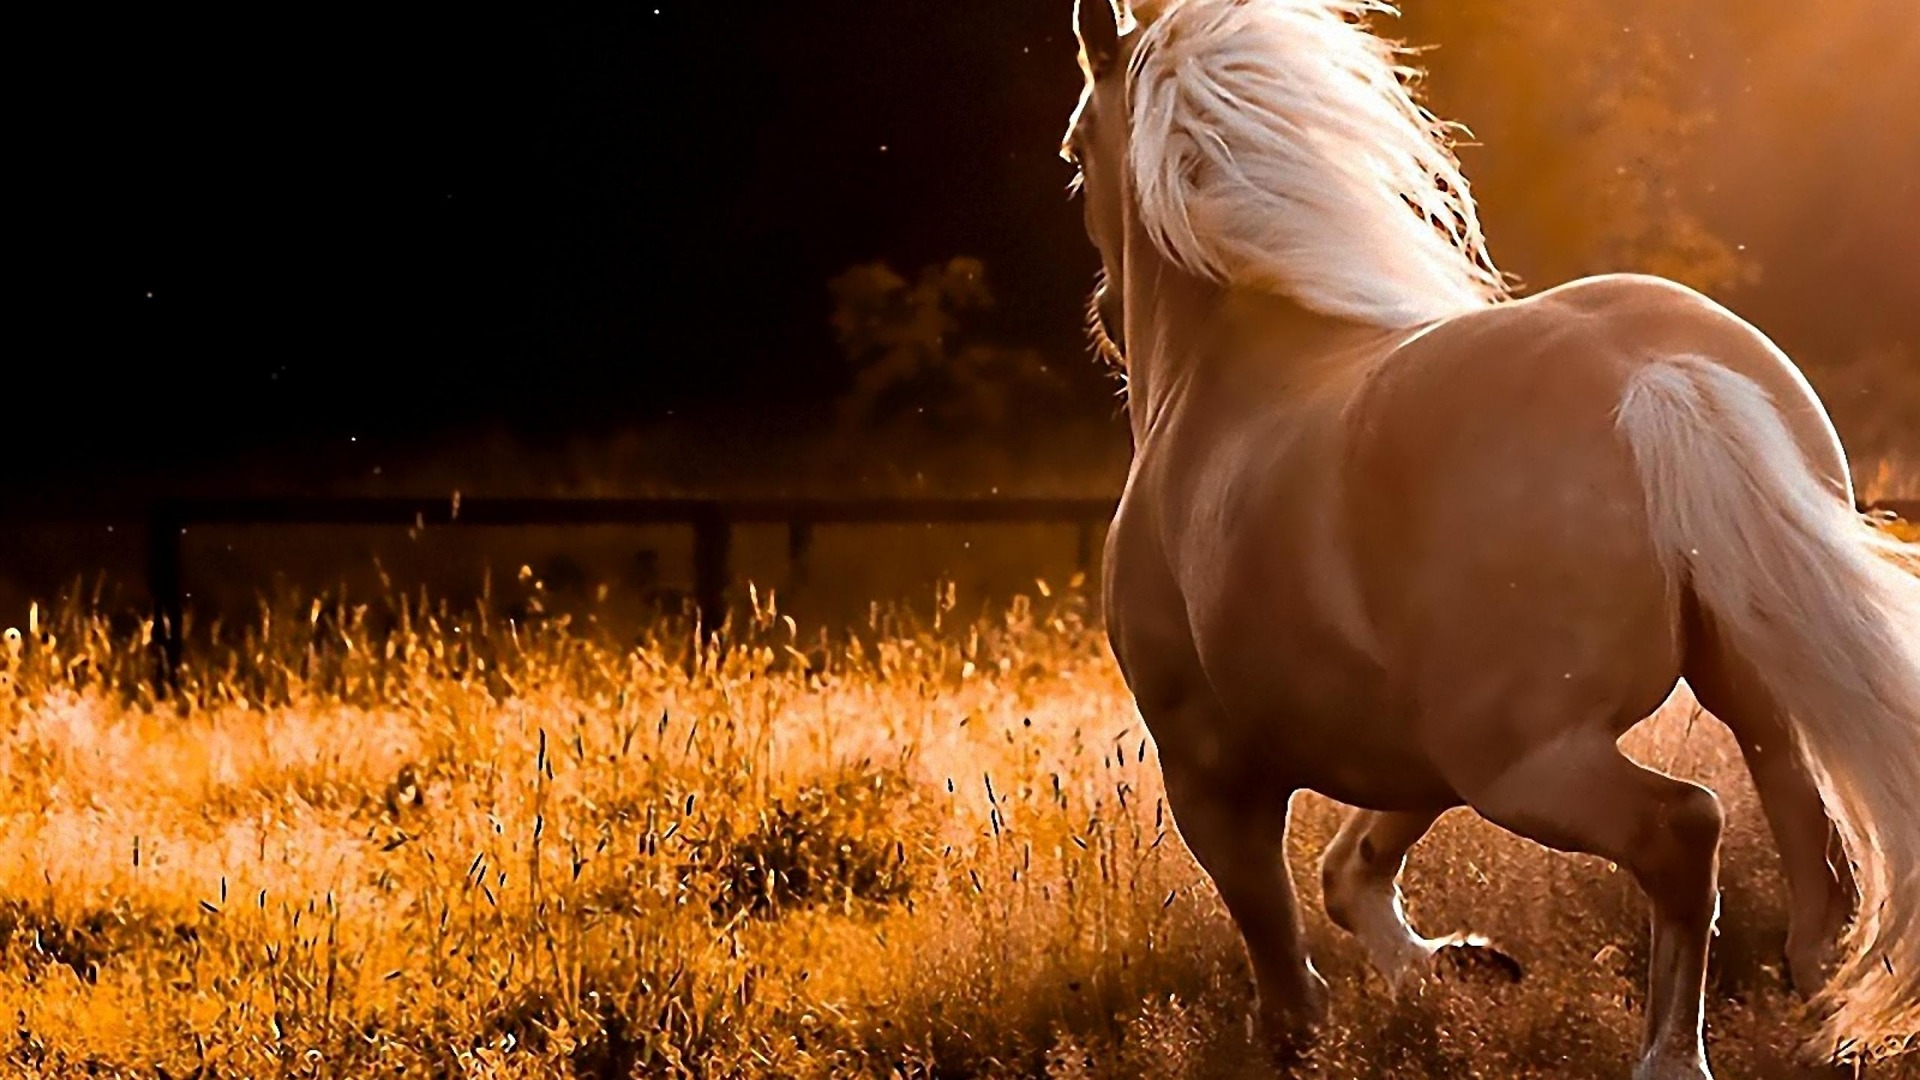 Amazing Wallpaper Horse Dark Brown - tumblr_static_horse_run-animal_photography_wallpaper_1920x1080  Pictures_429177.jpg